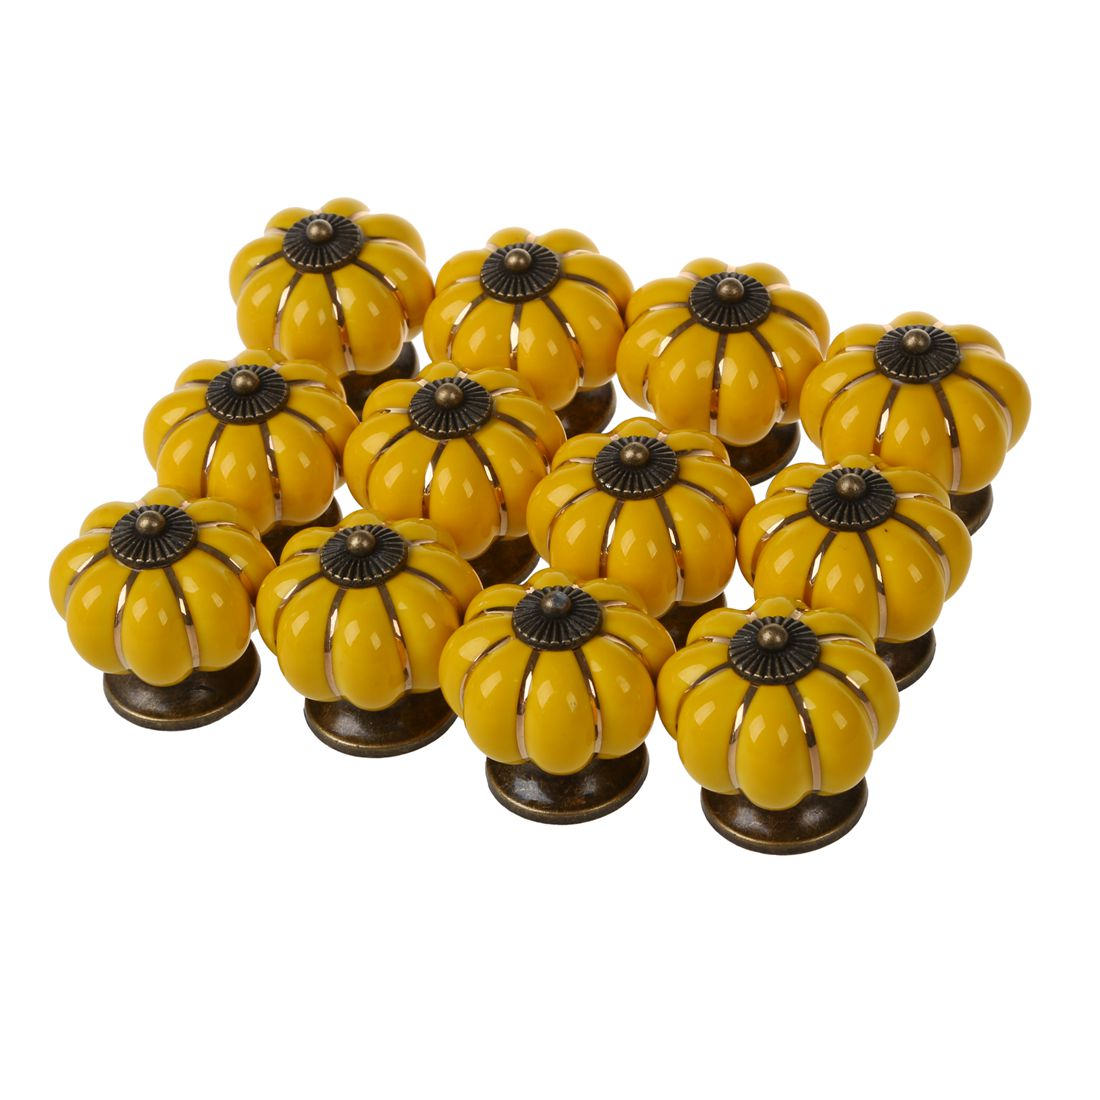 12Pcs Pumpkin Zinc Ceramic Door Knobs Drawer Pull Handle Kitchen Cabinet Cupboard Wardrobe коврик для йоги onerun цвет фиолетовый 183 х 61 х 0 4 см